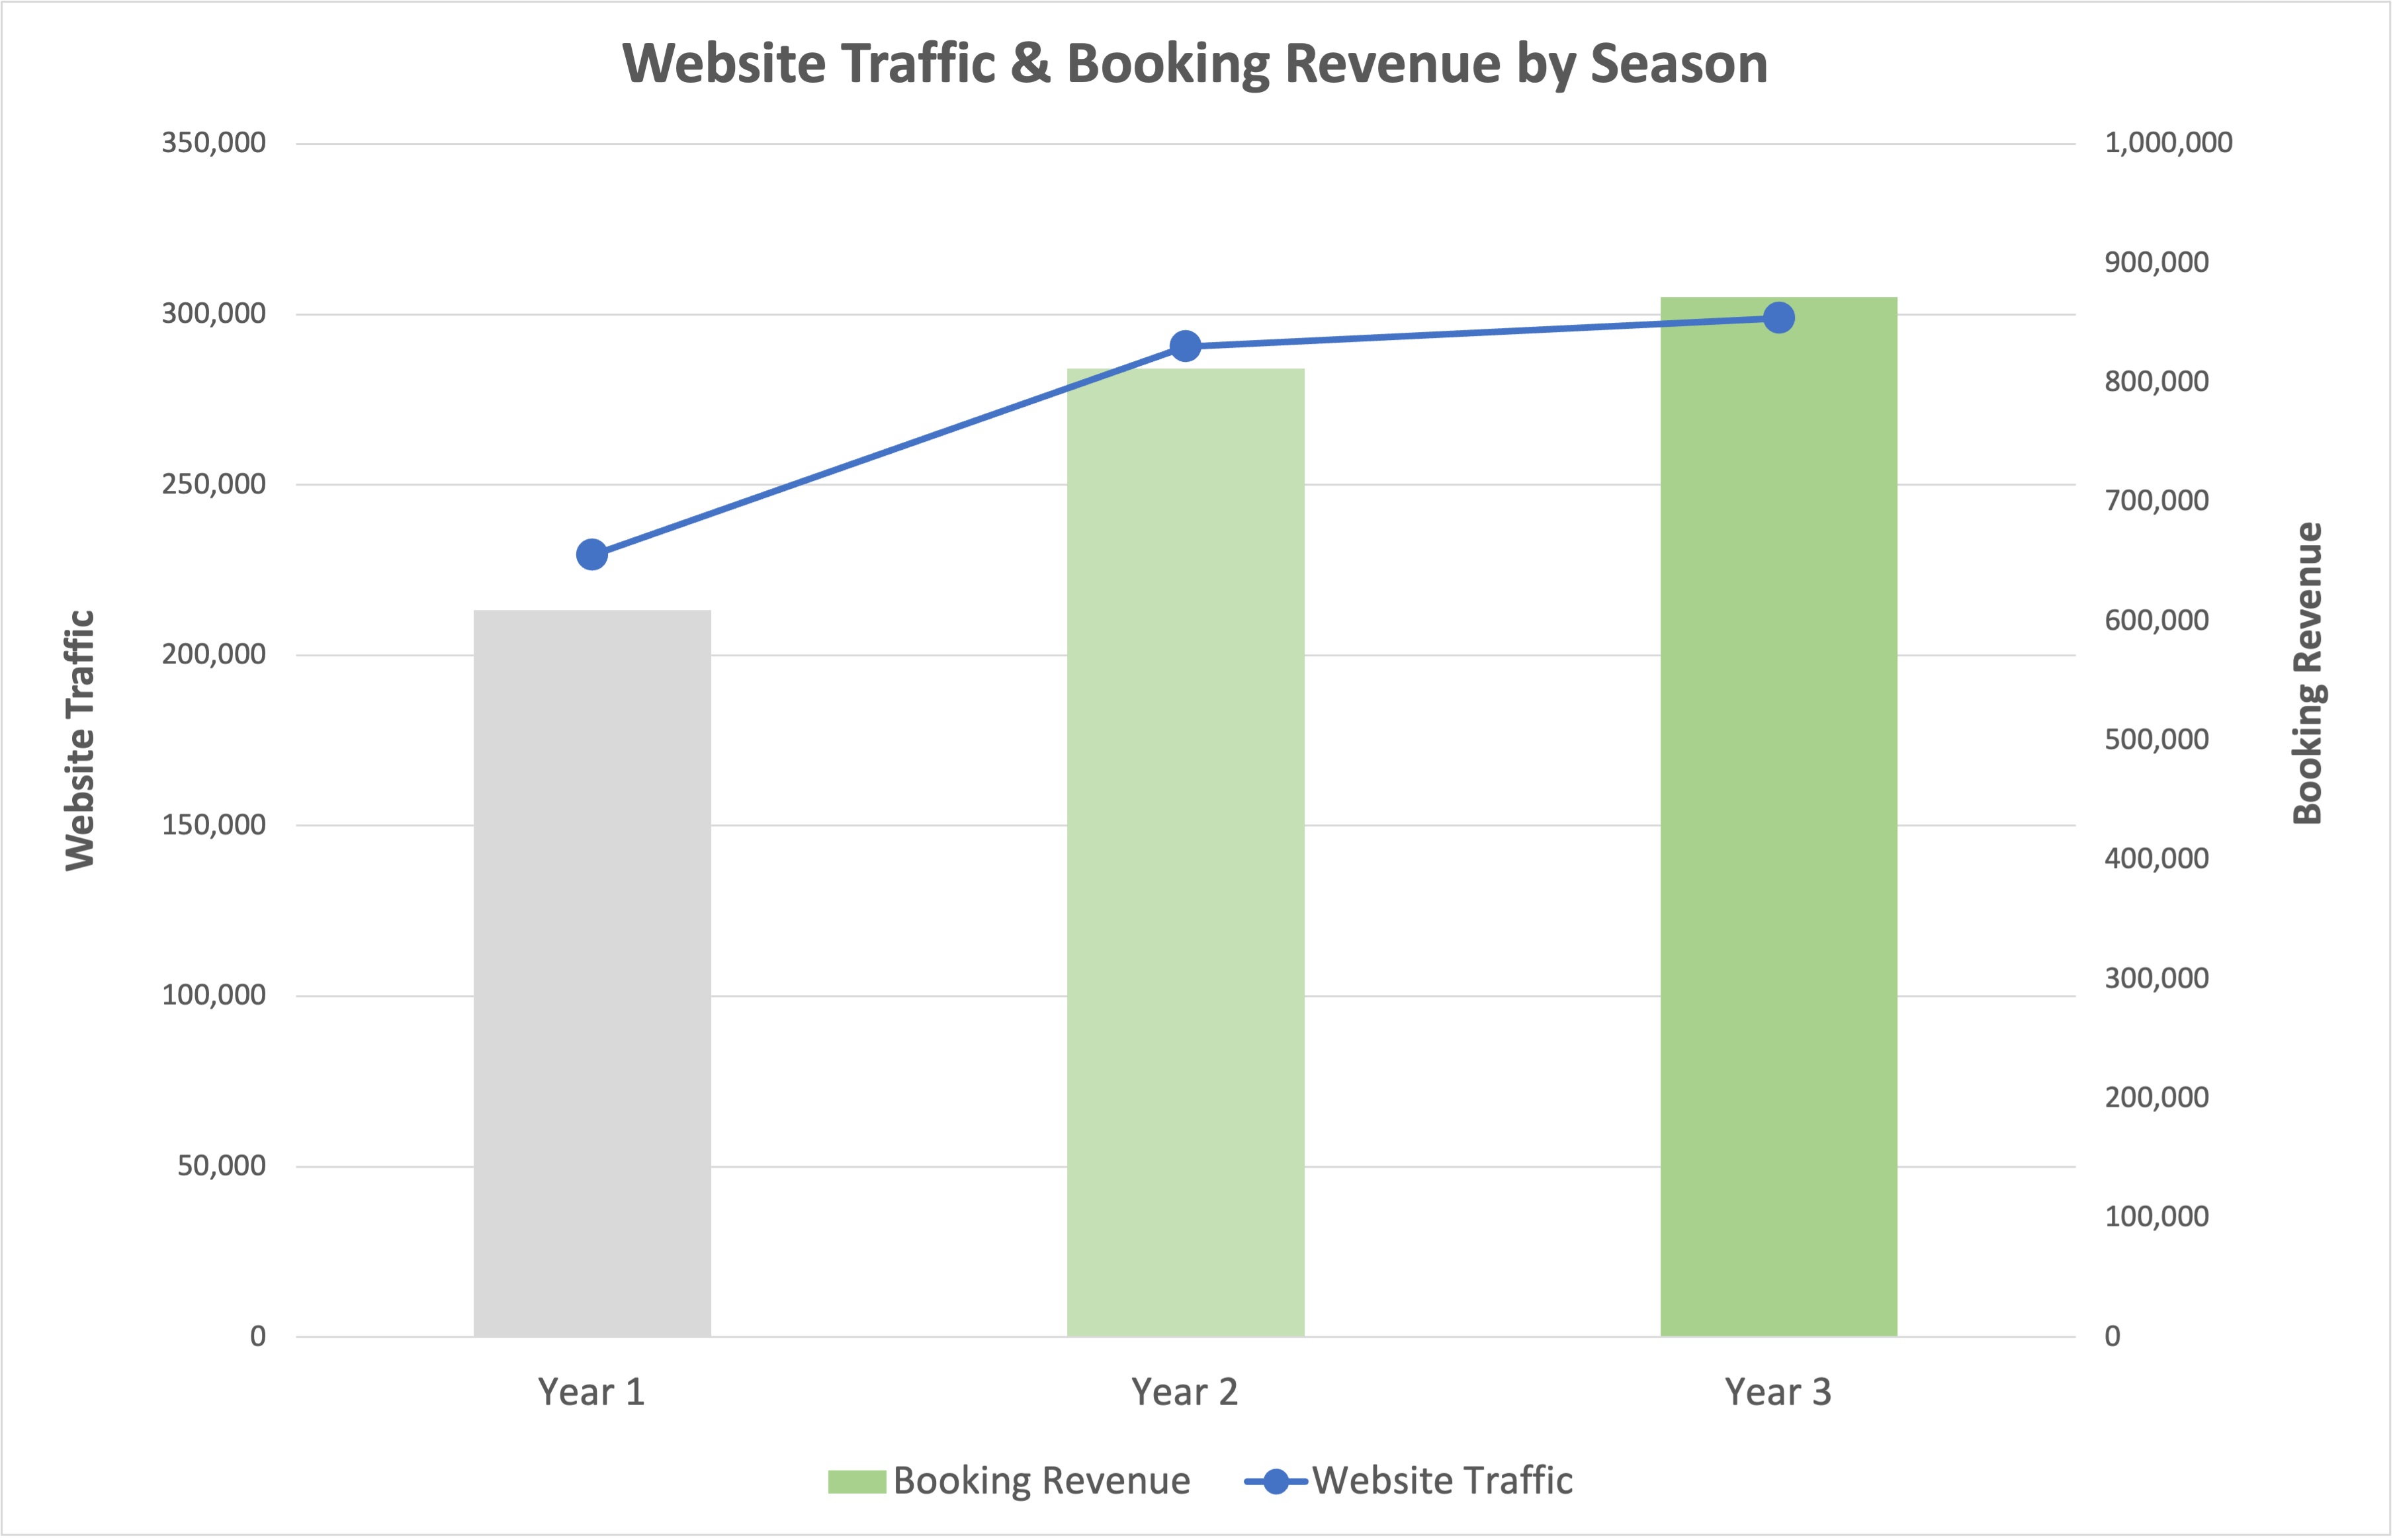 Hospitality Business Increases Booking Revenue by 43%